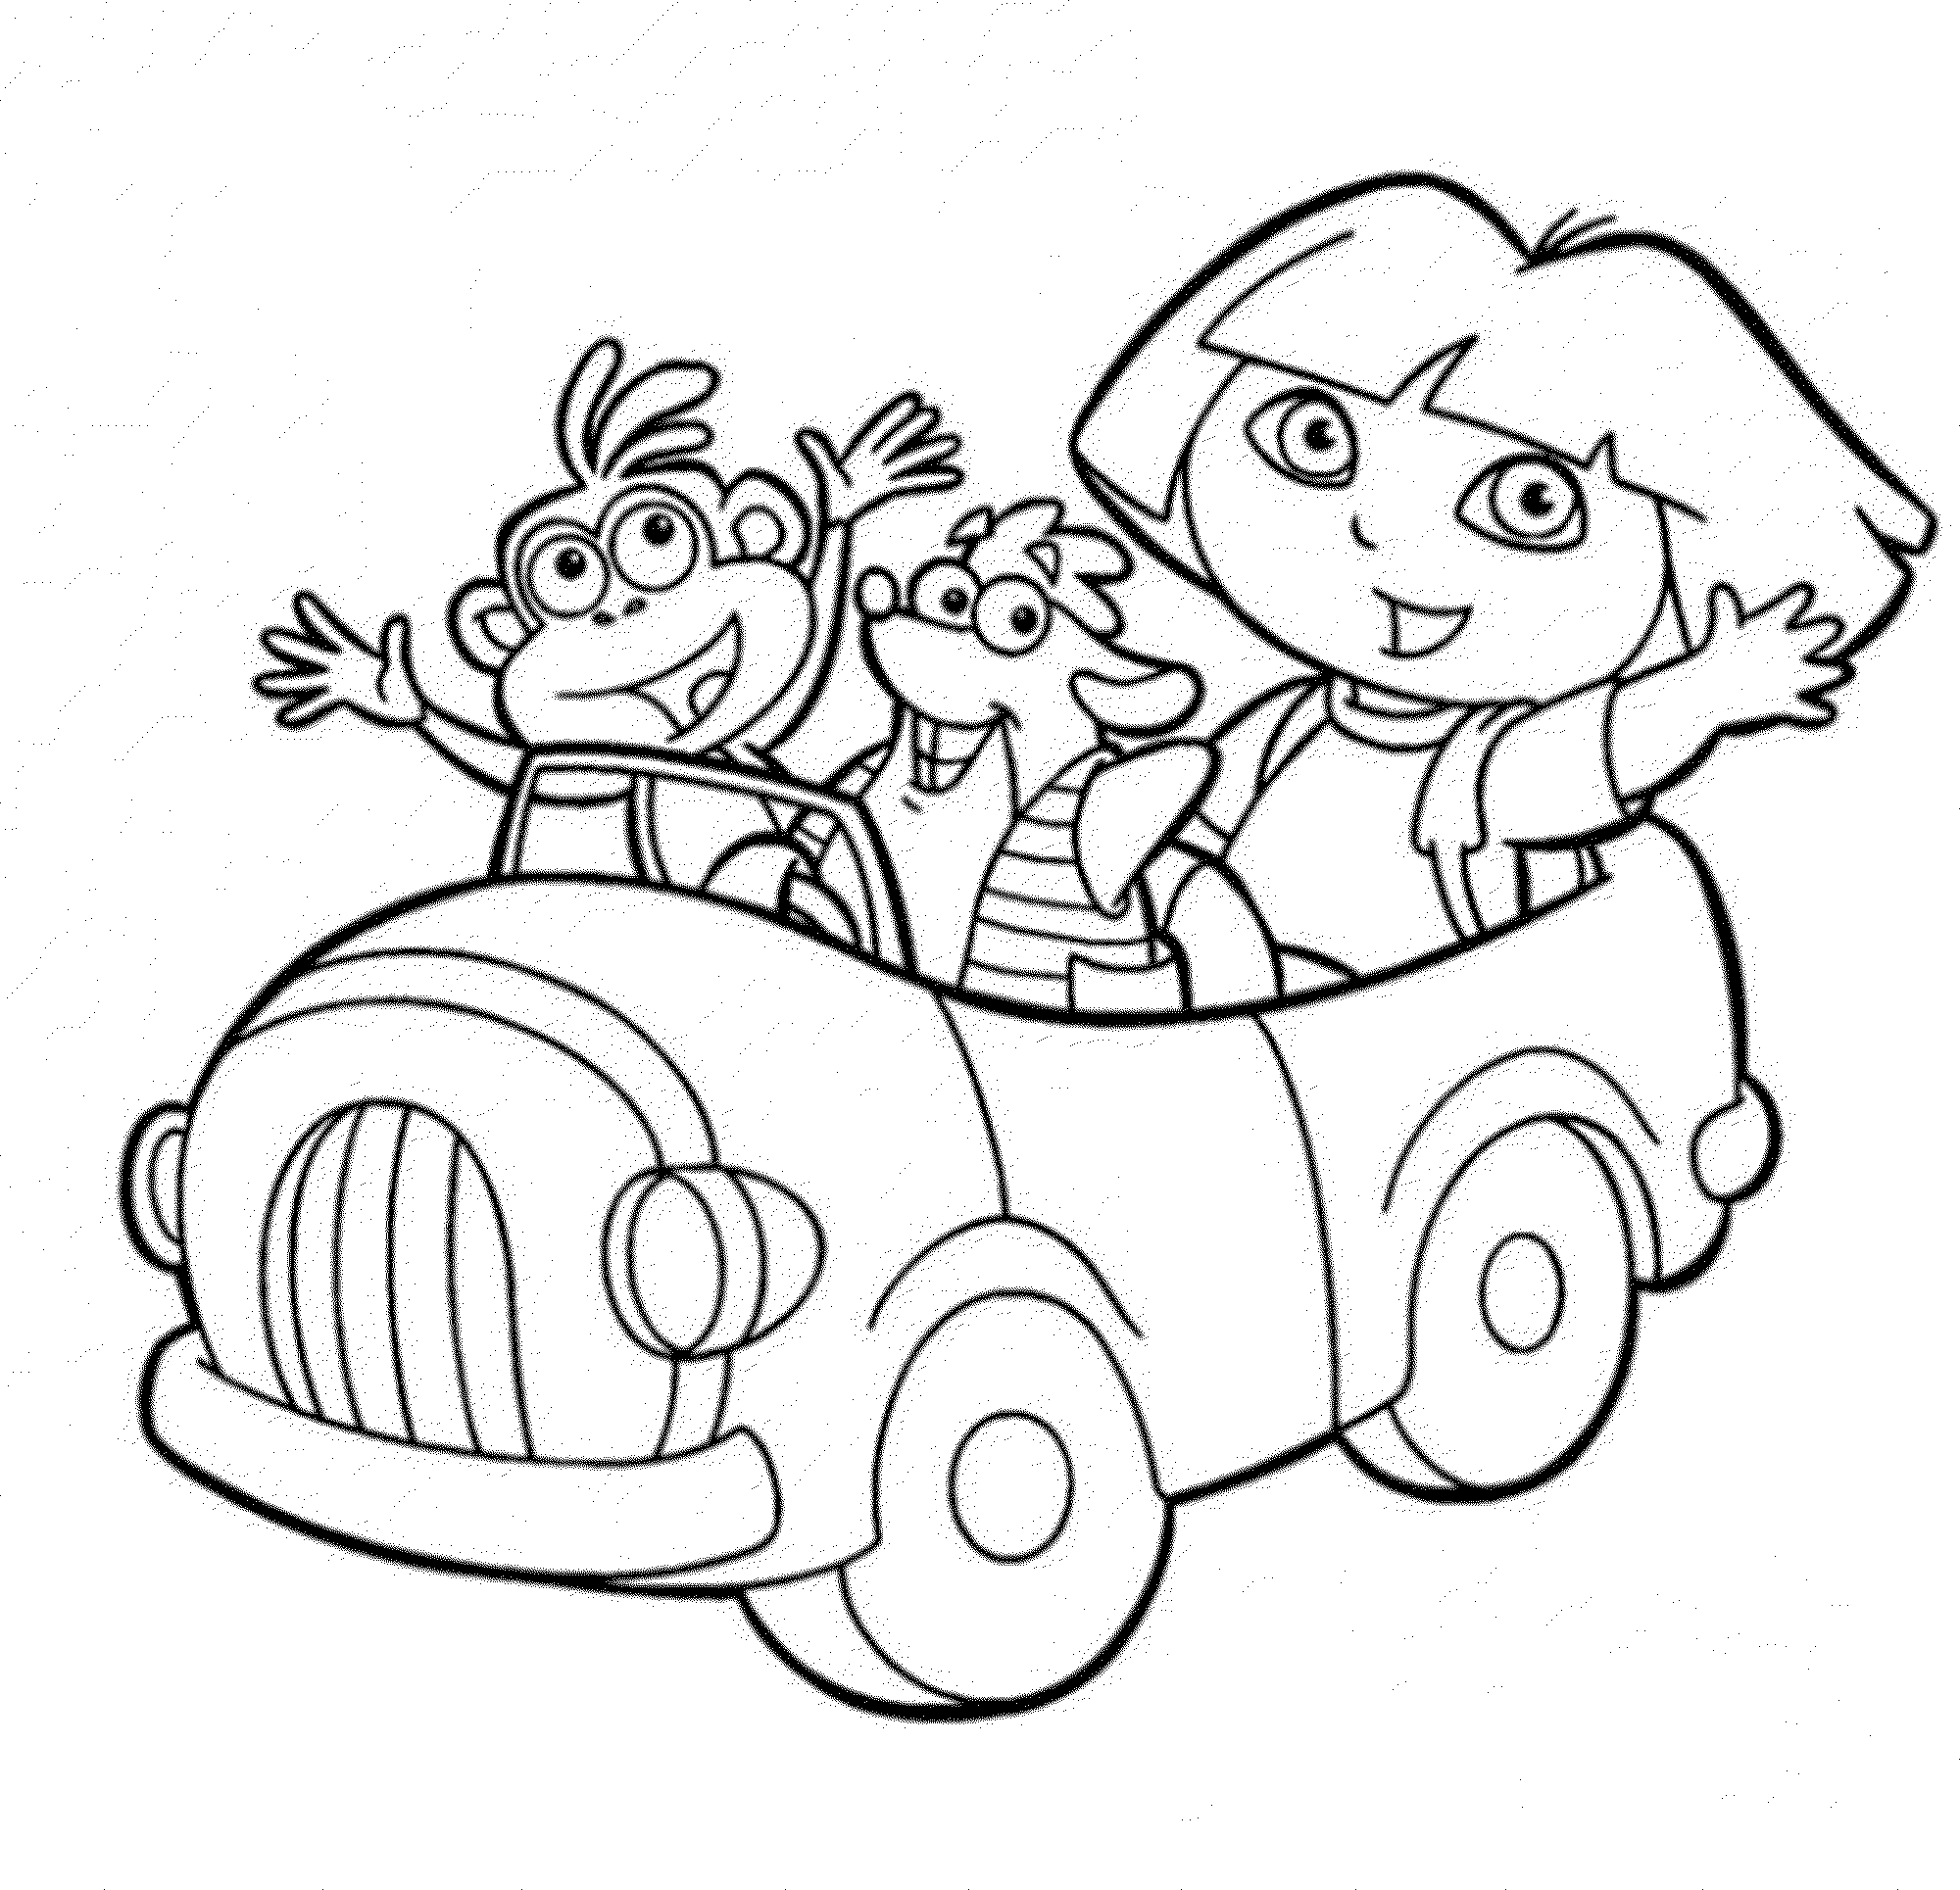 dora printables coloring lovely dora printable coloring pages for kids boys and printables dora coloring